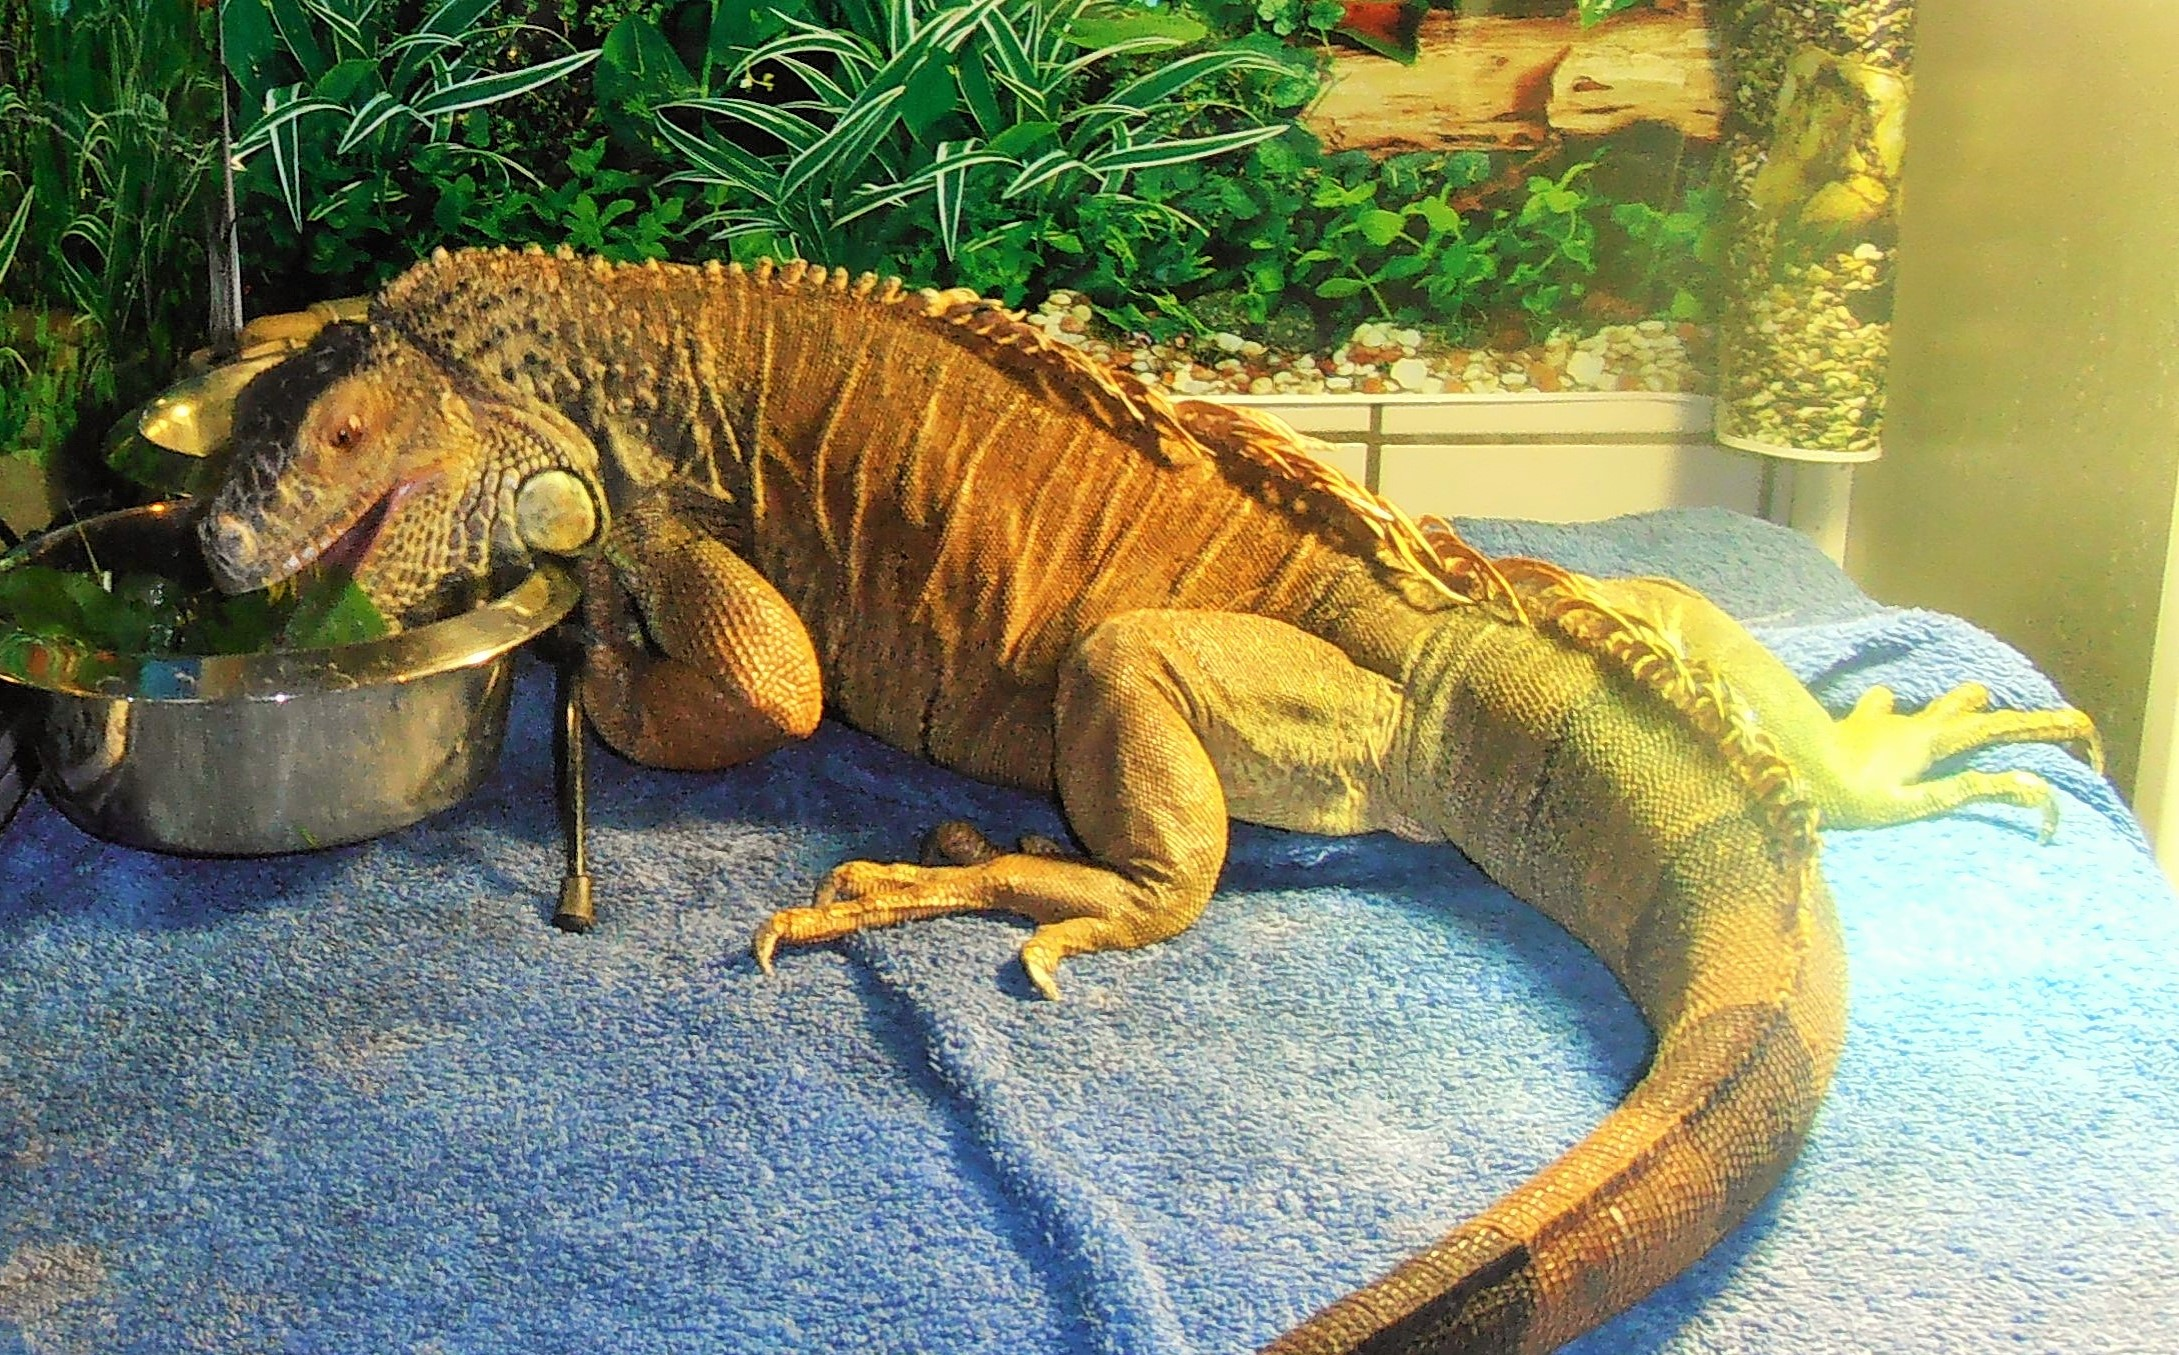 This is a true story about an 11 year old egg bound Iguana named Kerne.